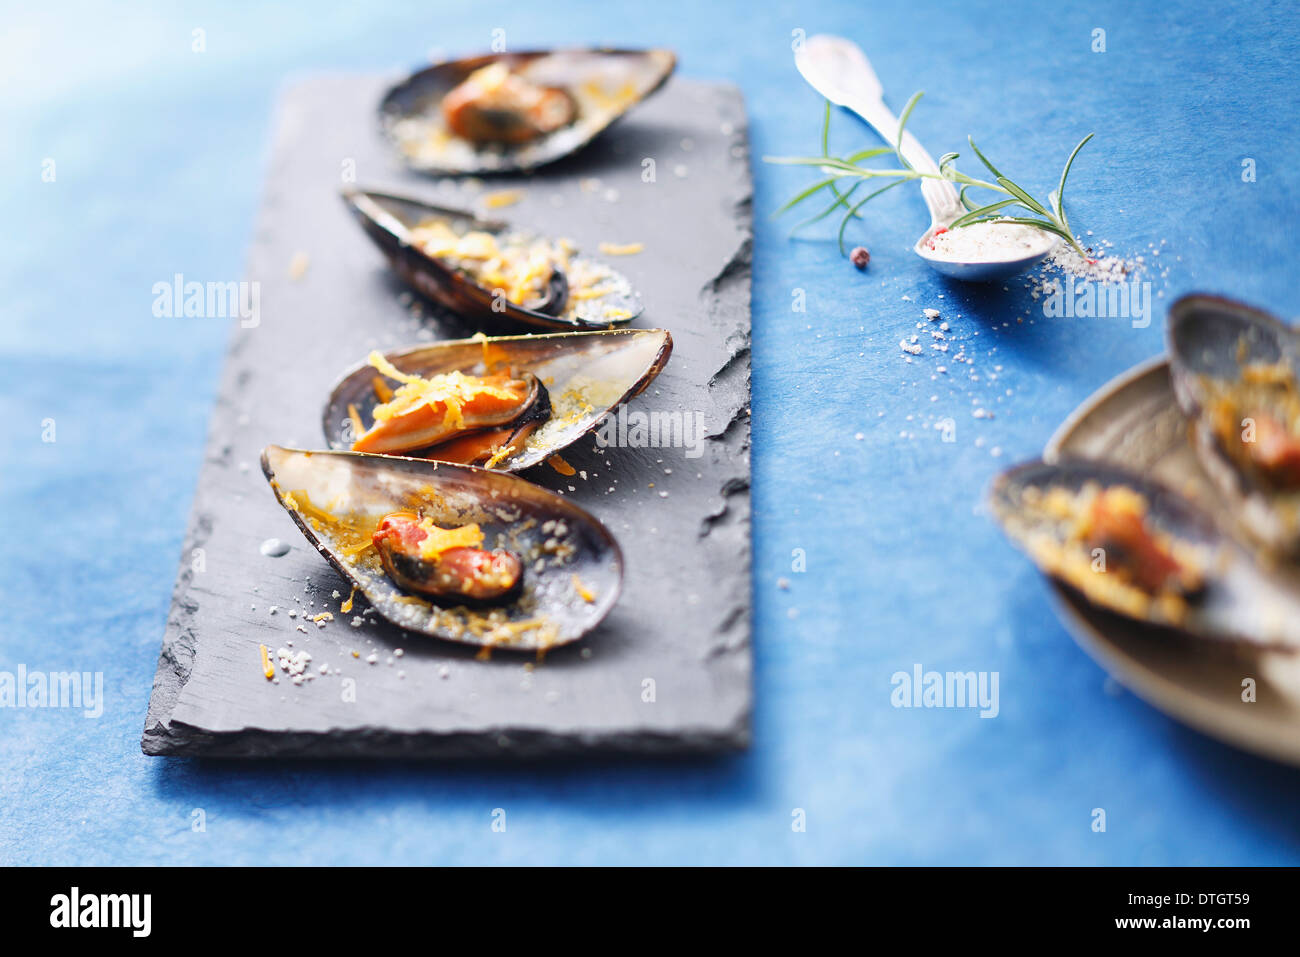 Mussels grilled with mimolette - Stock Image